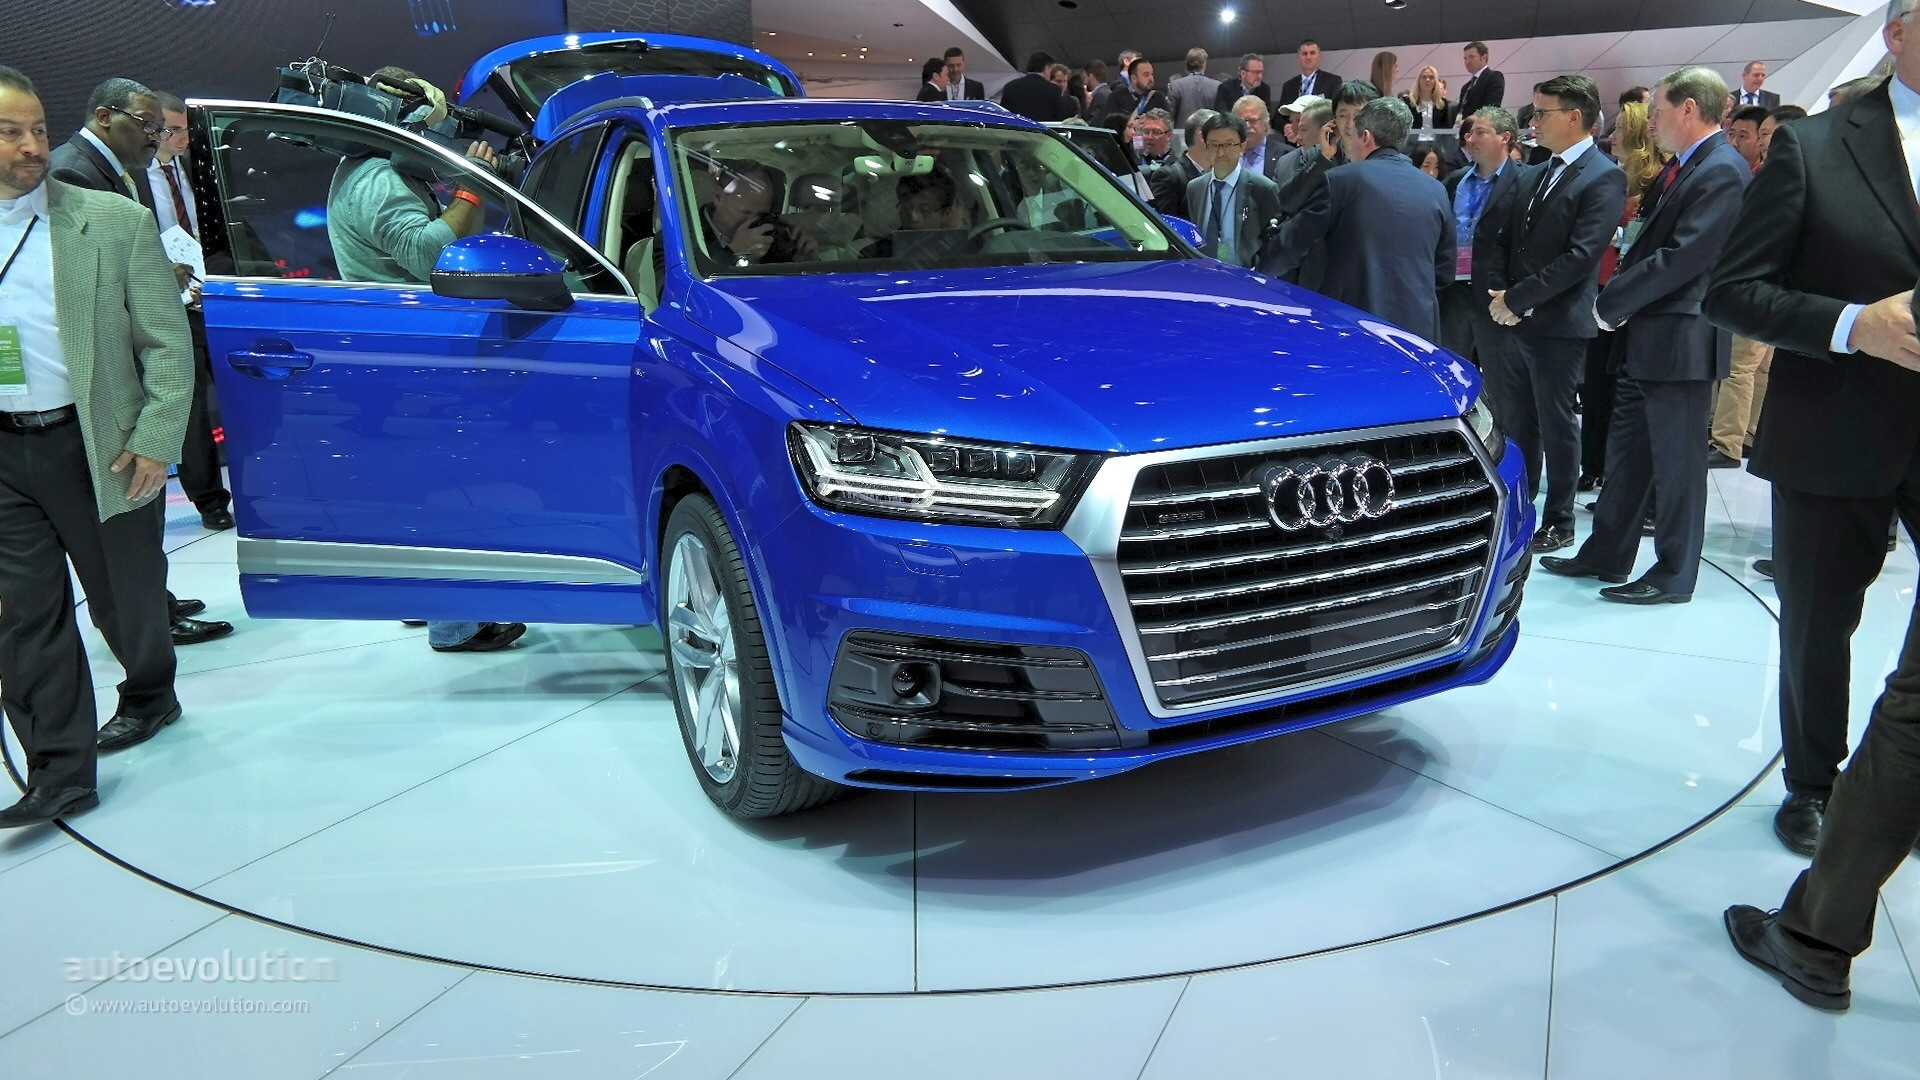 2015 audi q7 coming to uk with 272 hp diesel and 7 seats pricing announced autoevolution. Black Bedroom Furniture Sets. Home Design Ideas